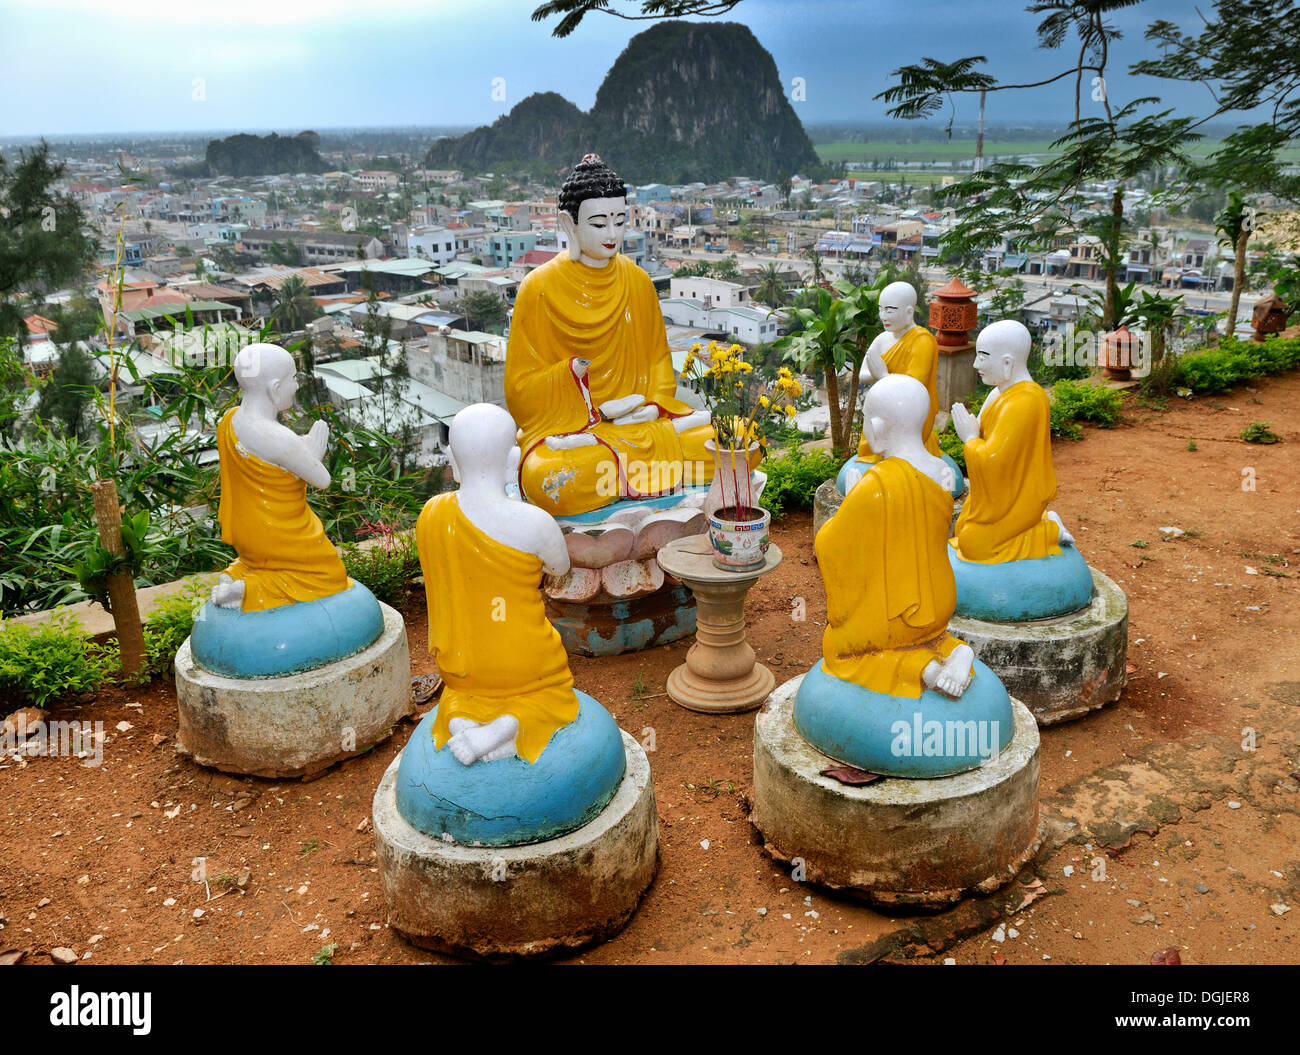 Buddha and praying monks, sculptures in front of Marble Mountains, Ngu Hanh Son, Thuy Son, Da Nang, Vietnam, Asia - Stock Image